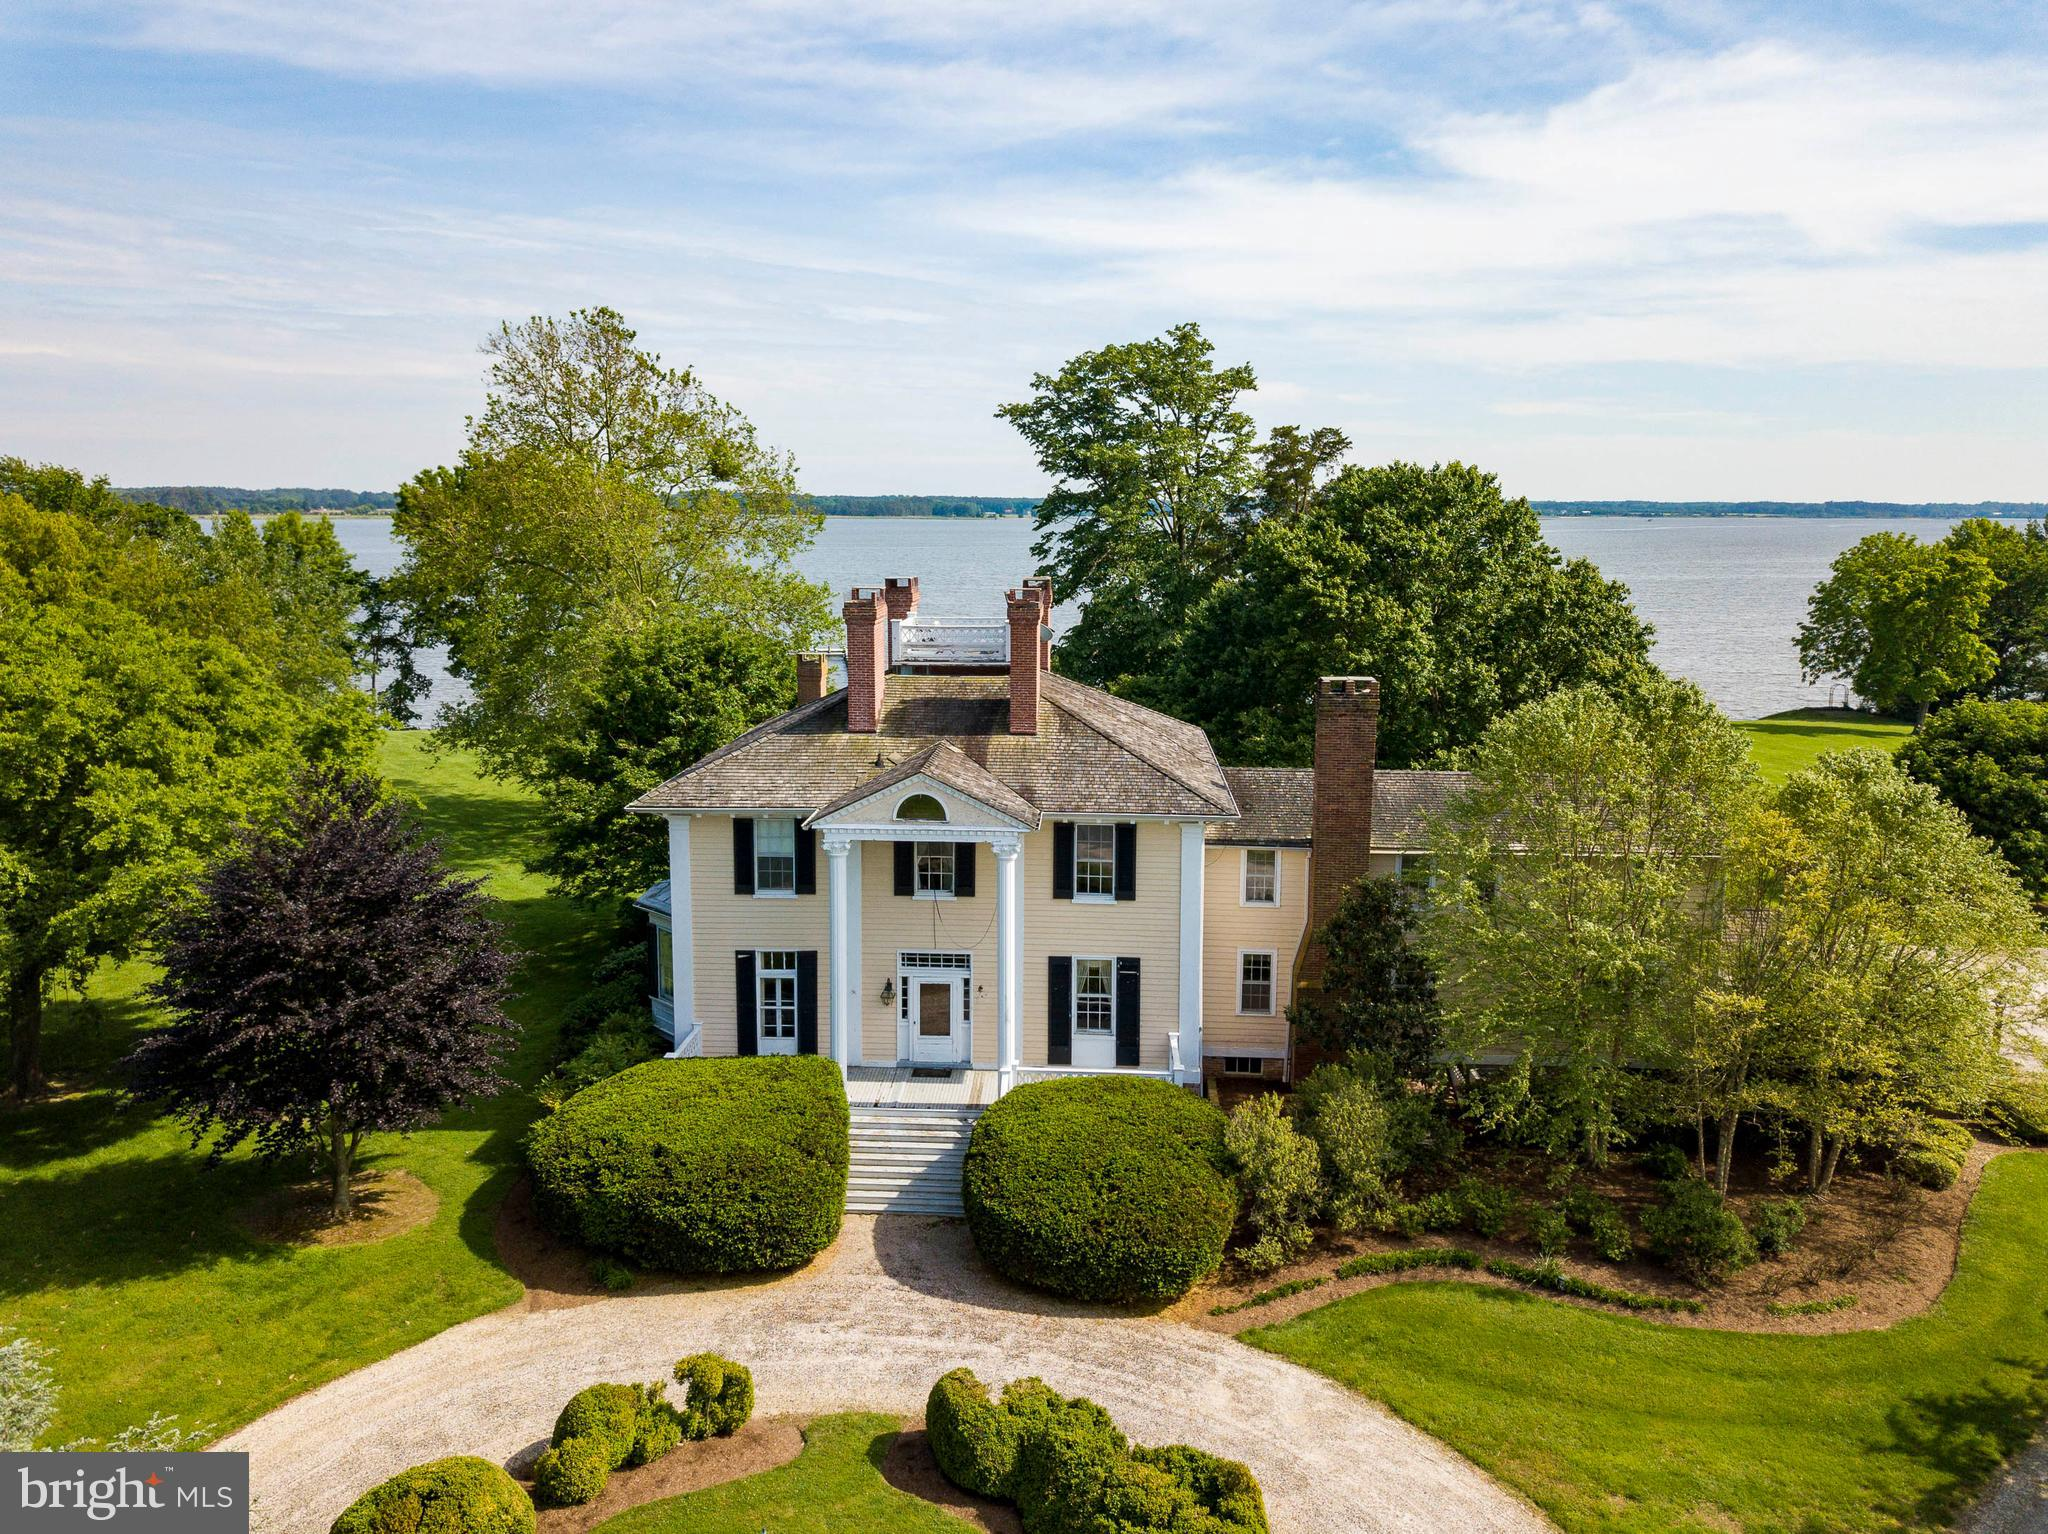 "Spectacular Historic Waterfront Estate known as ""Ingleside"" consists of 15+/- acres overlooking the mighty Choptank River. This property provides unmatched views sitting high on the banks of the Choptank River just a short boat ride to many amenities on the river and surrounding tributaries.  Easy access by car, boat or air, make this estate property most desirable if you are interested in restoring this historic home to its former glory or building your family's dream home - offered at $1,795,000."